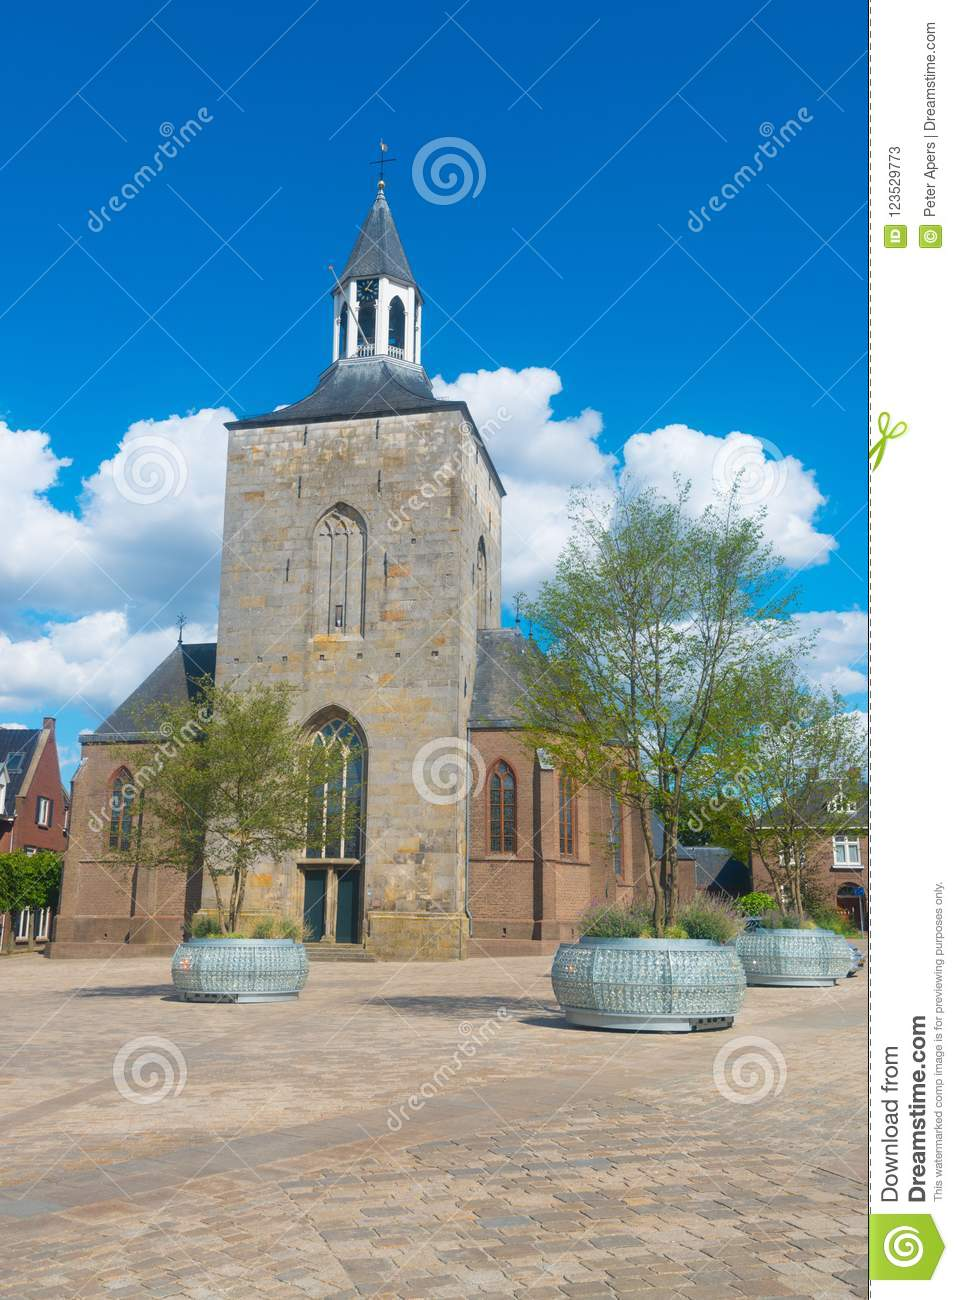 Download Saint Pancratius Basilica In Tubbergen, The Netherlands Stock Image - Image of tubbergen, pancratius: 123529773